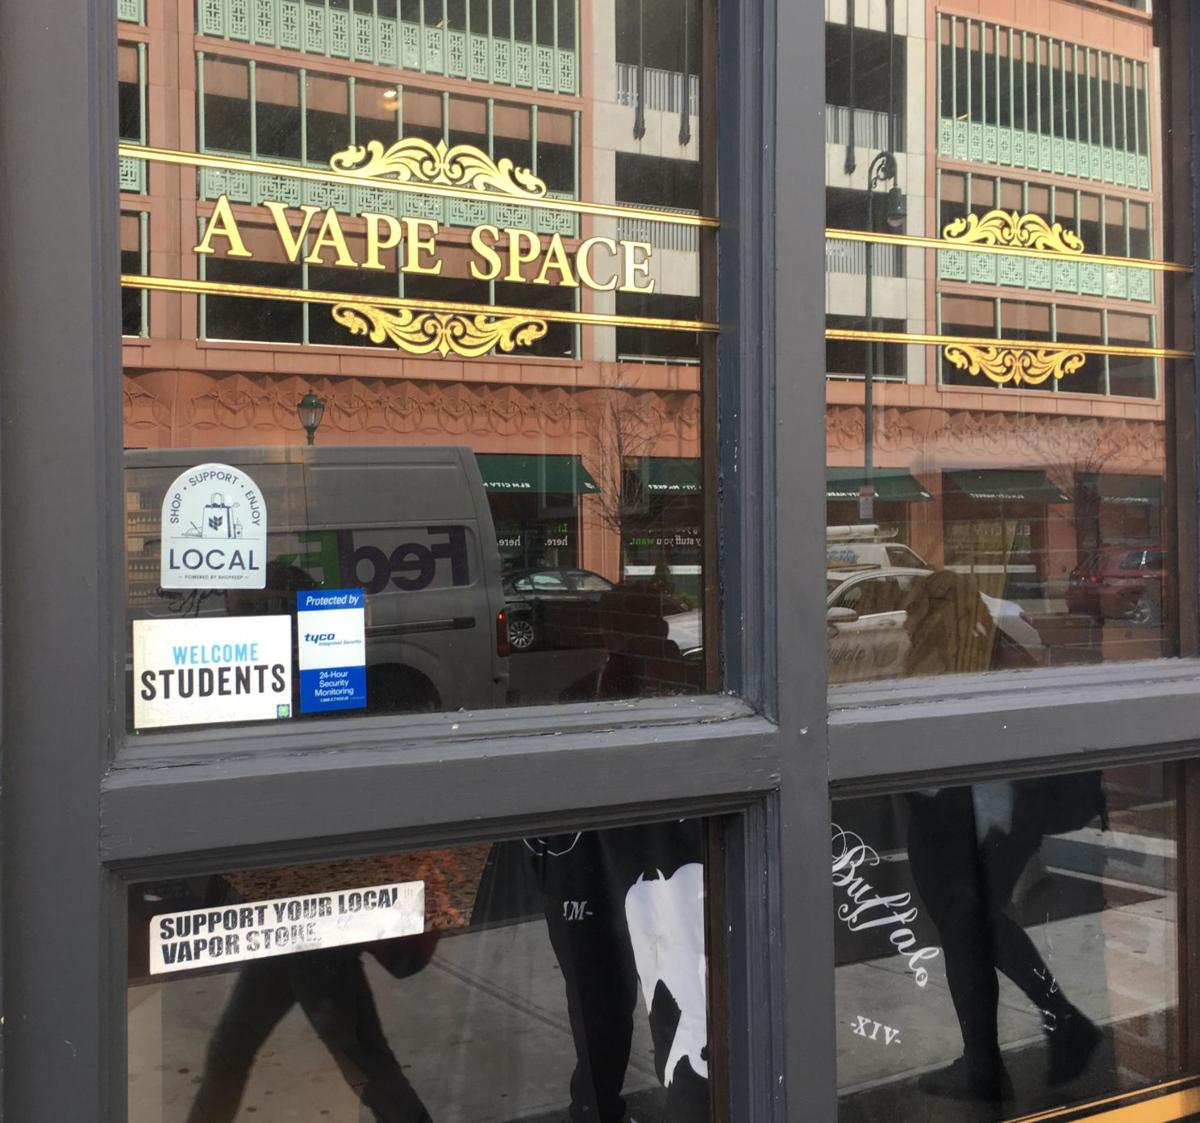 Dan Haar: We're not the problem, vape stores insist